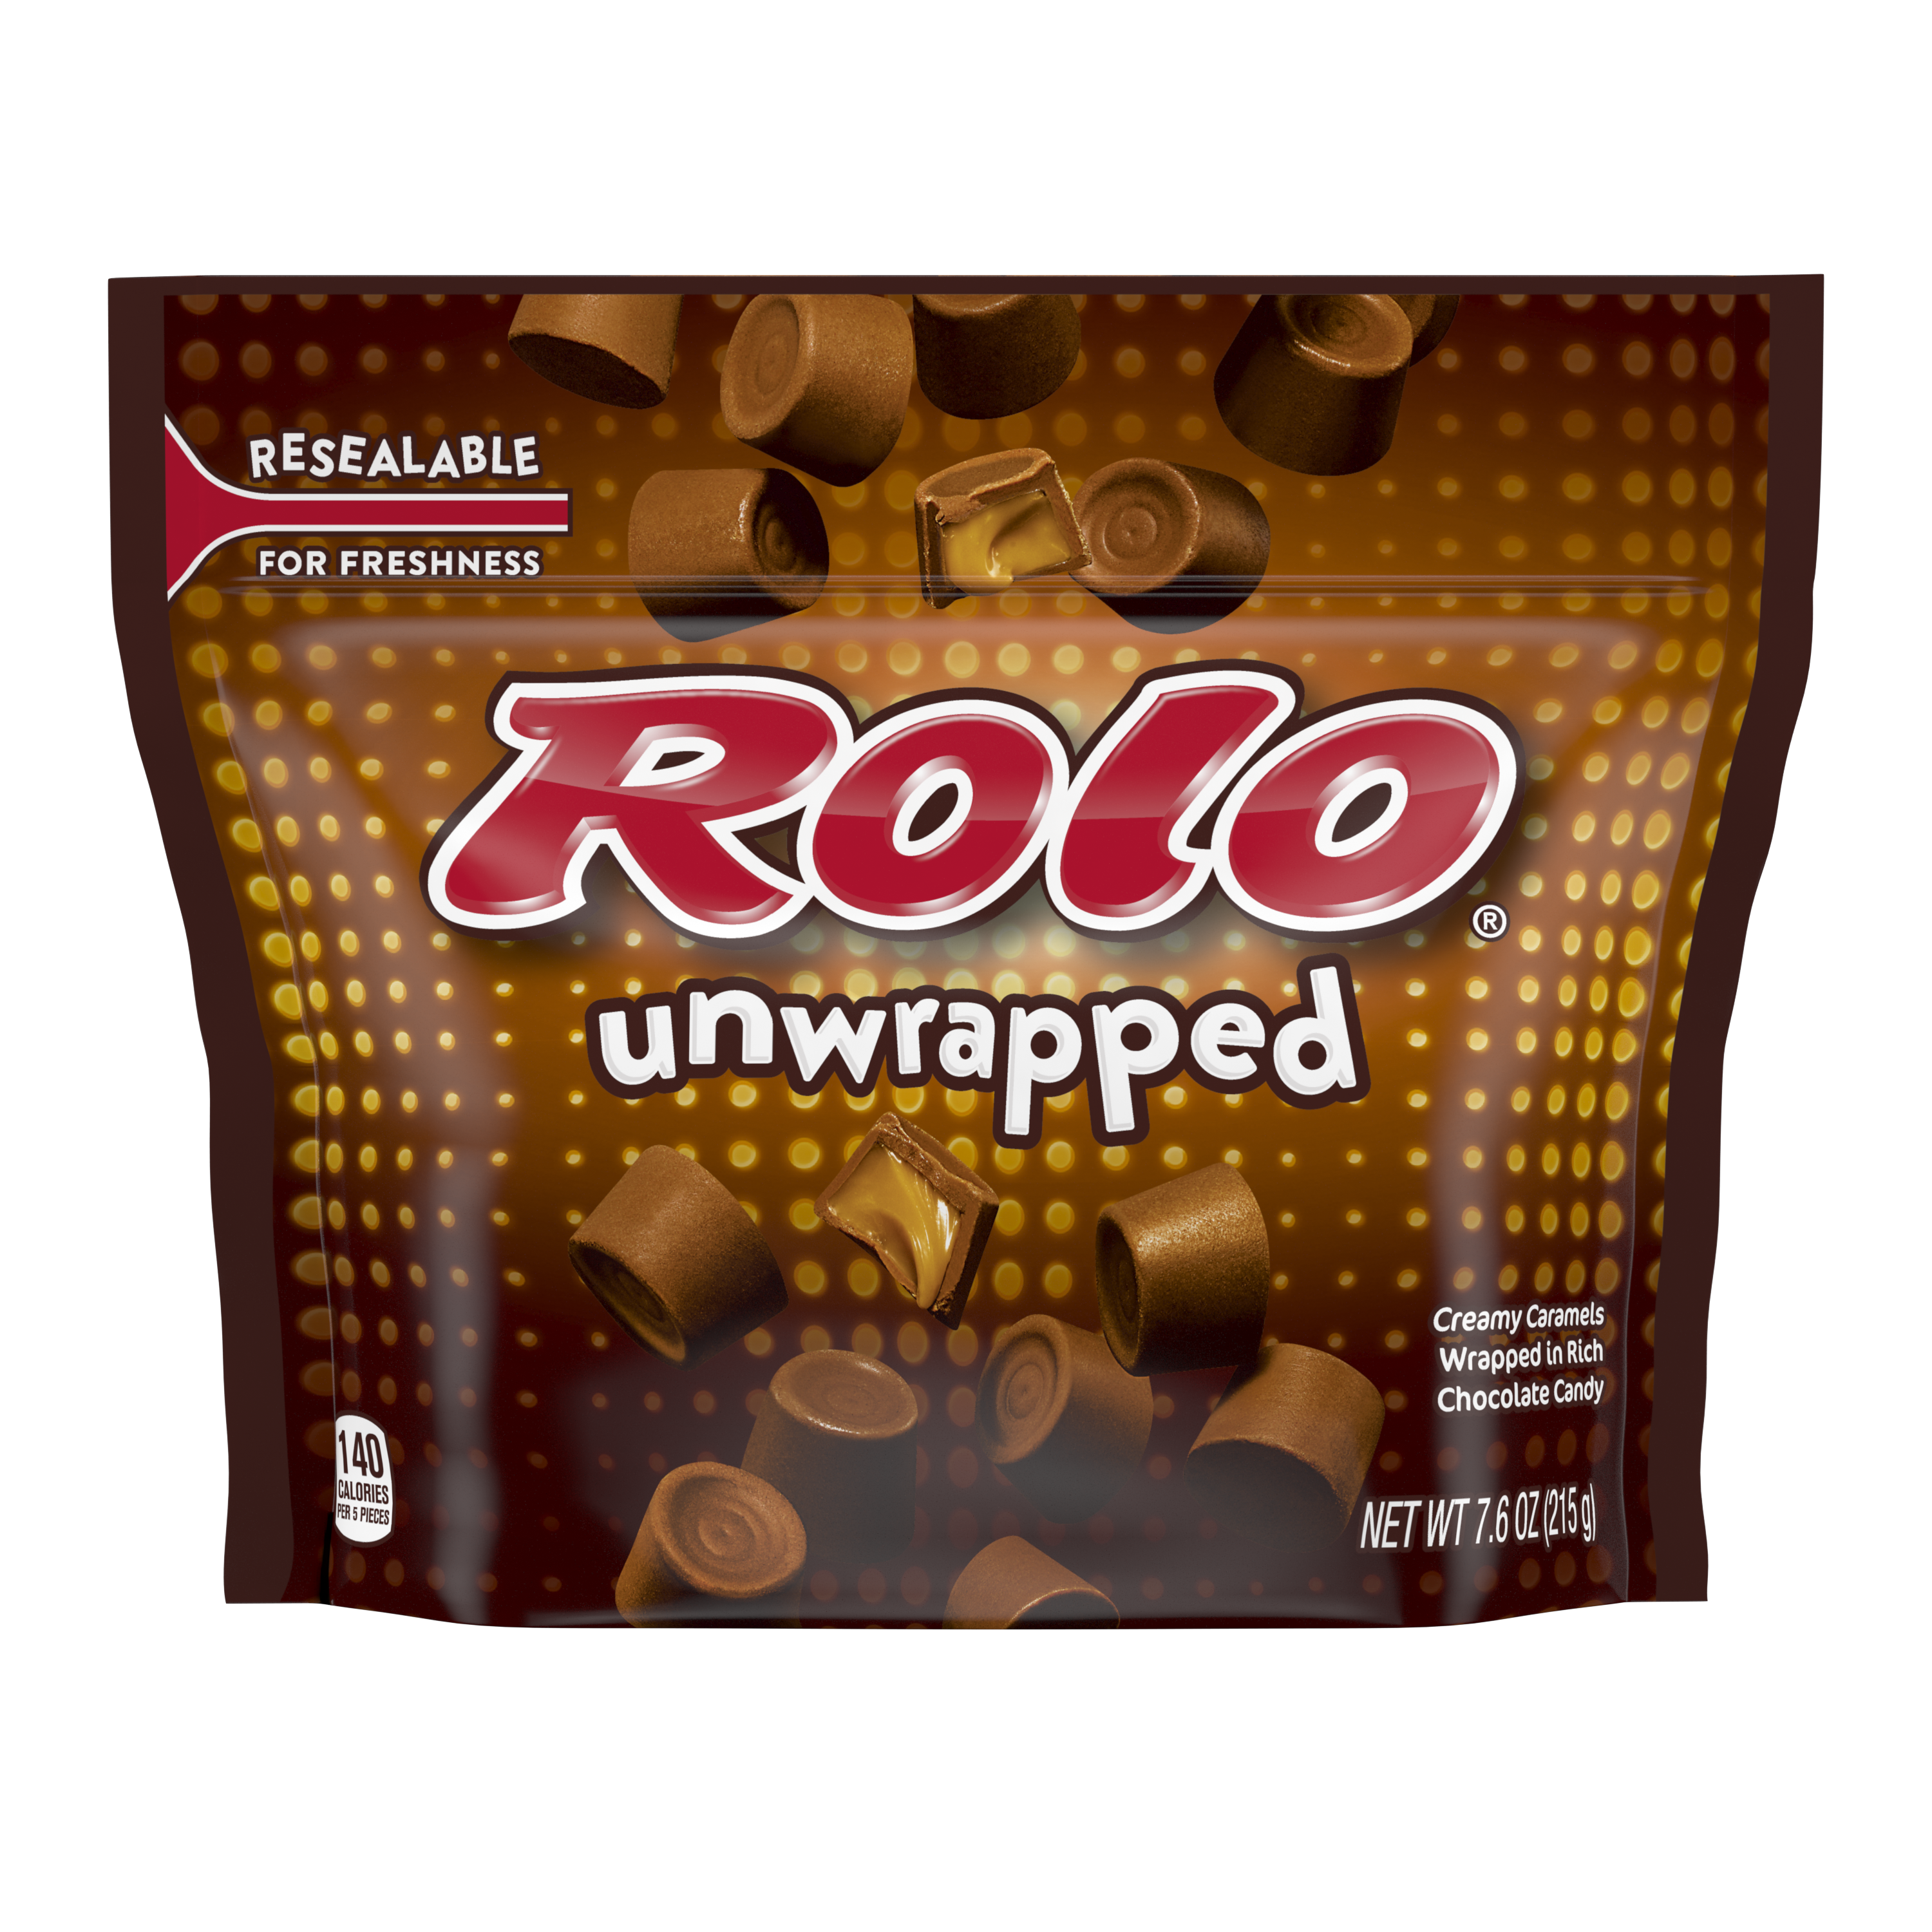 ROLO® Creamy Caramels in Rich Chocolate Candy, 7.6 oz bag - Front of Package